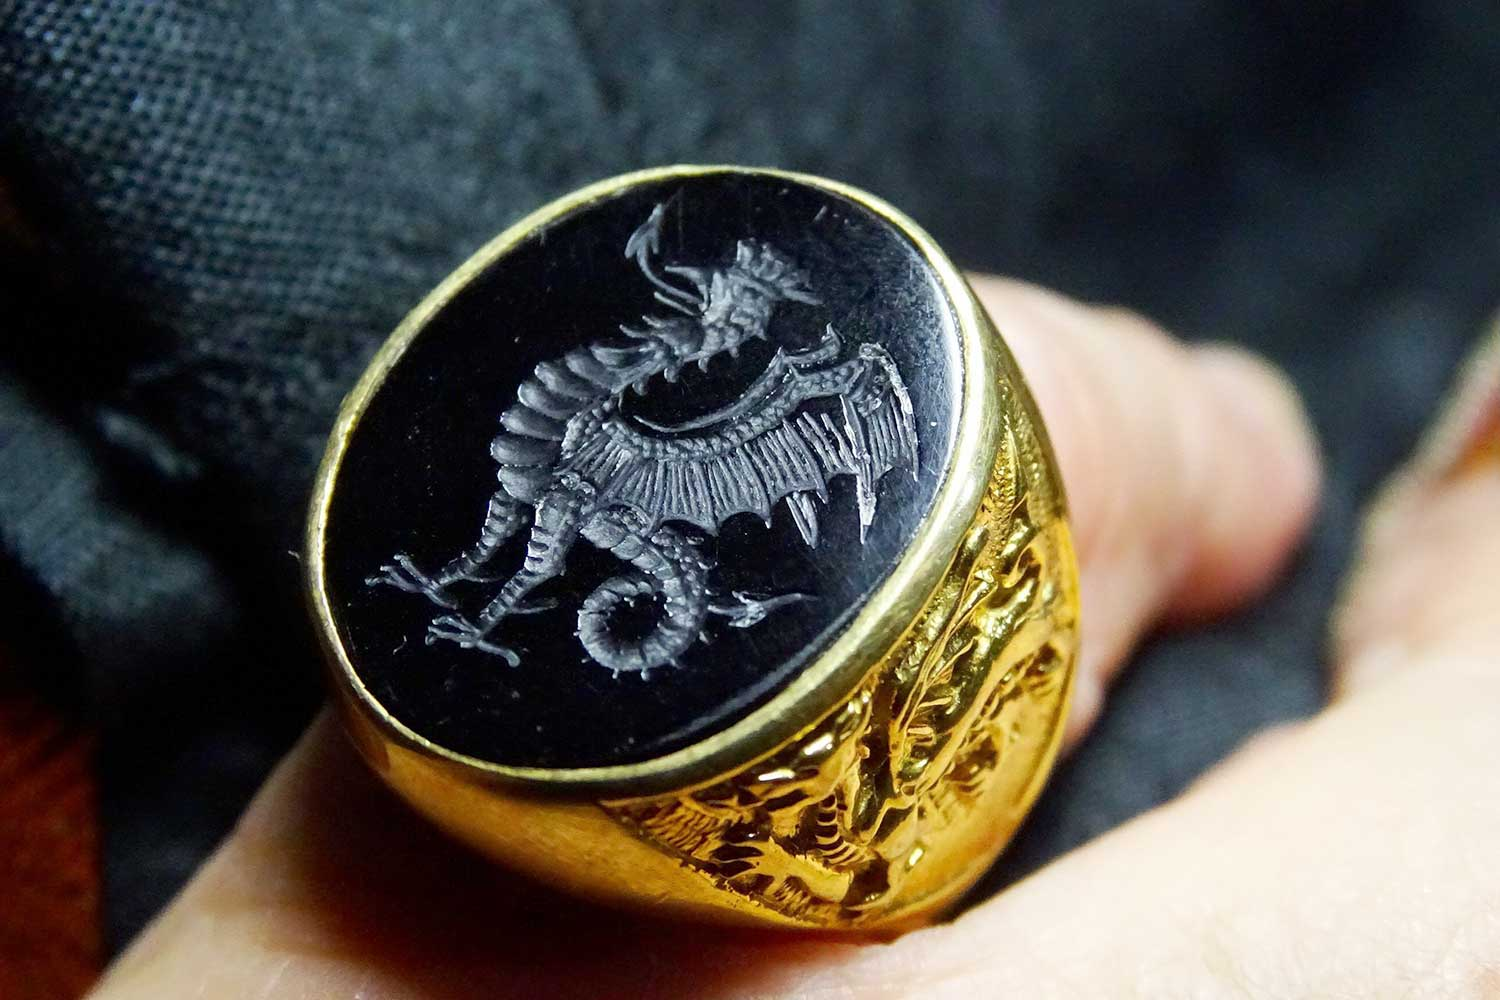 Cockatrice Signet Ring